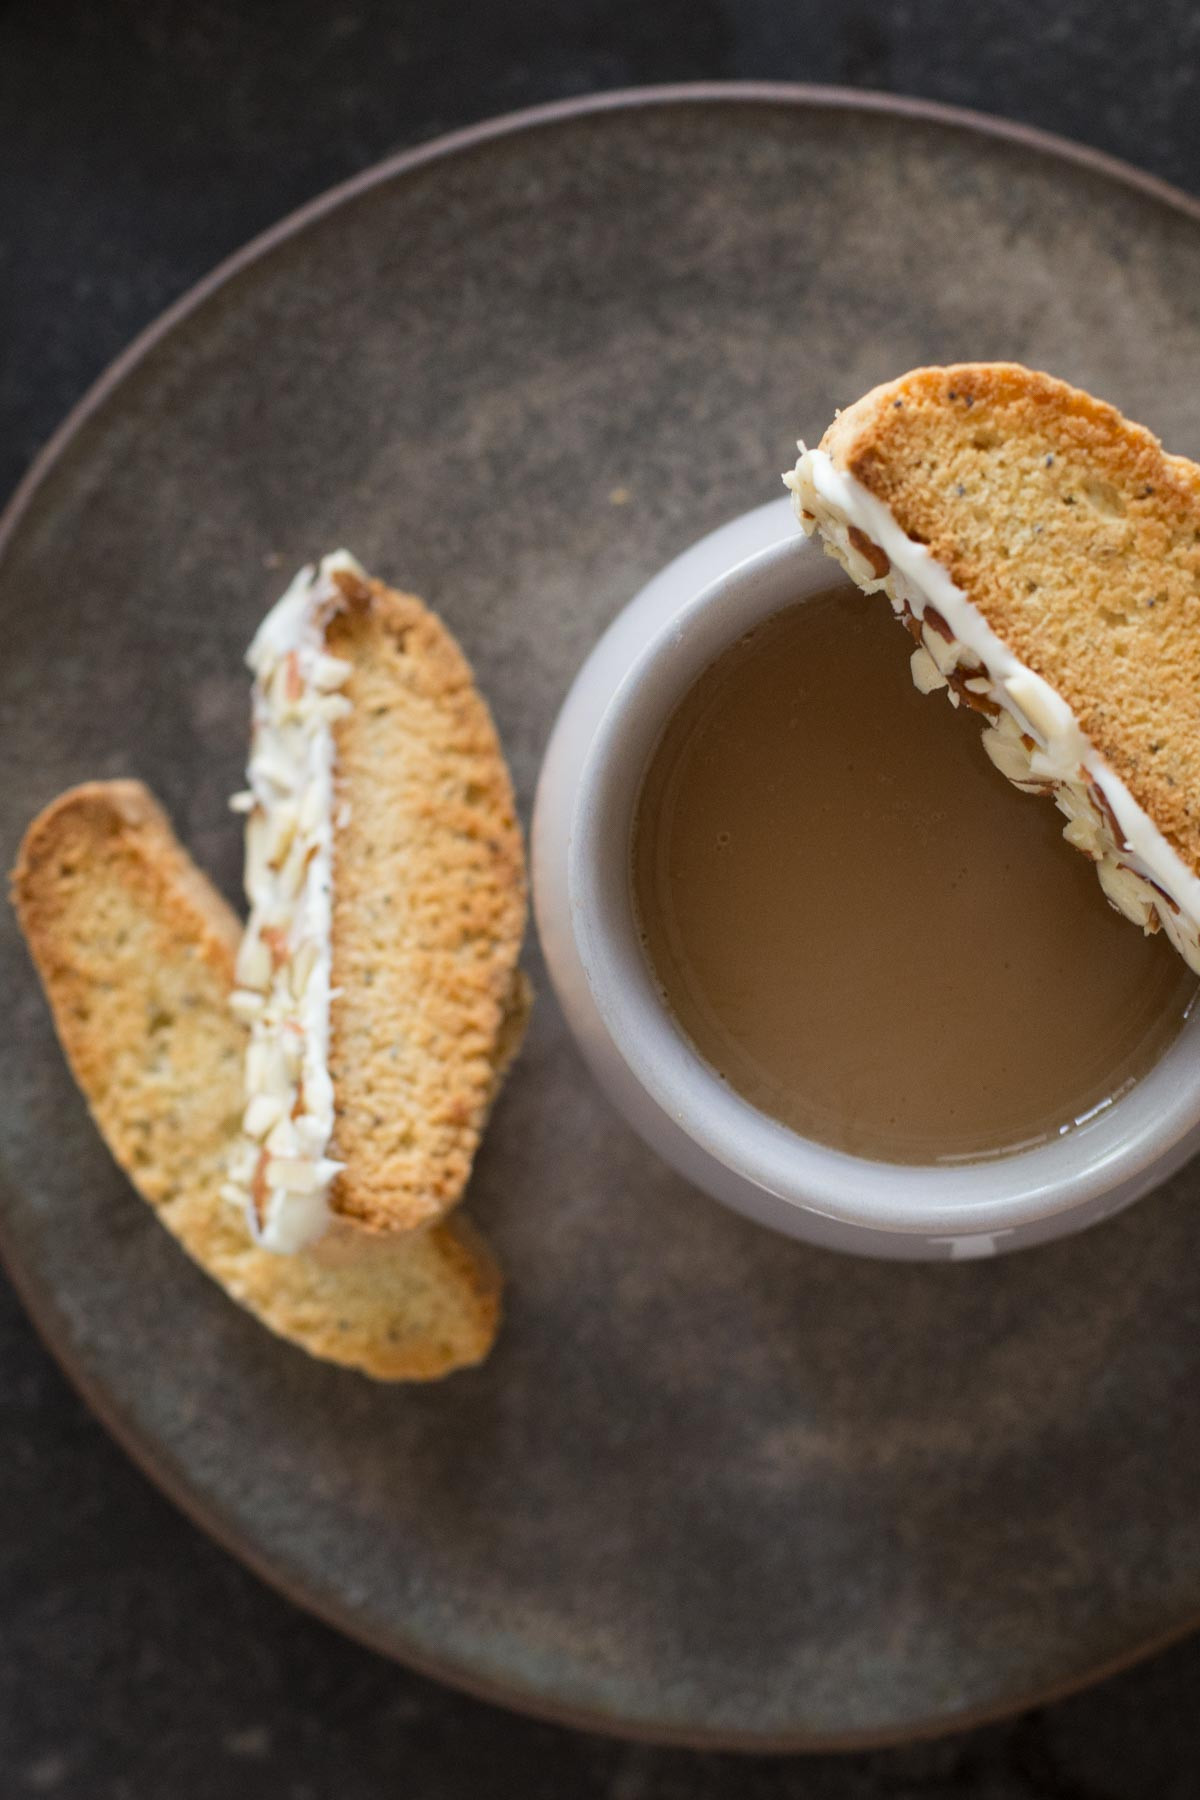 Two Almond Poppy Seed Biscotti slices on a plate, along with a cup of coffee with an Almond Poppy Seed Biscotti slice balancing on the rim of the cup.